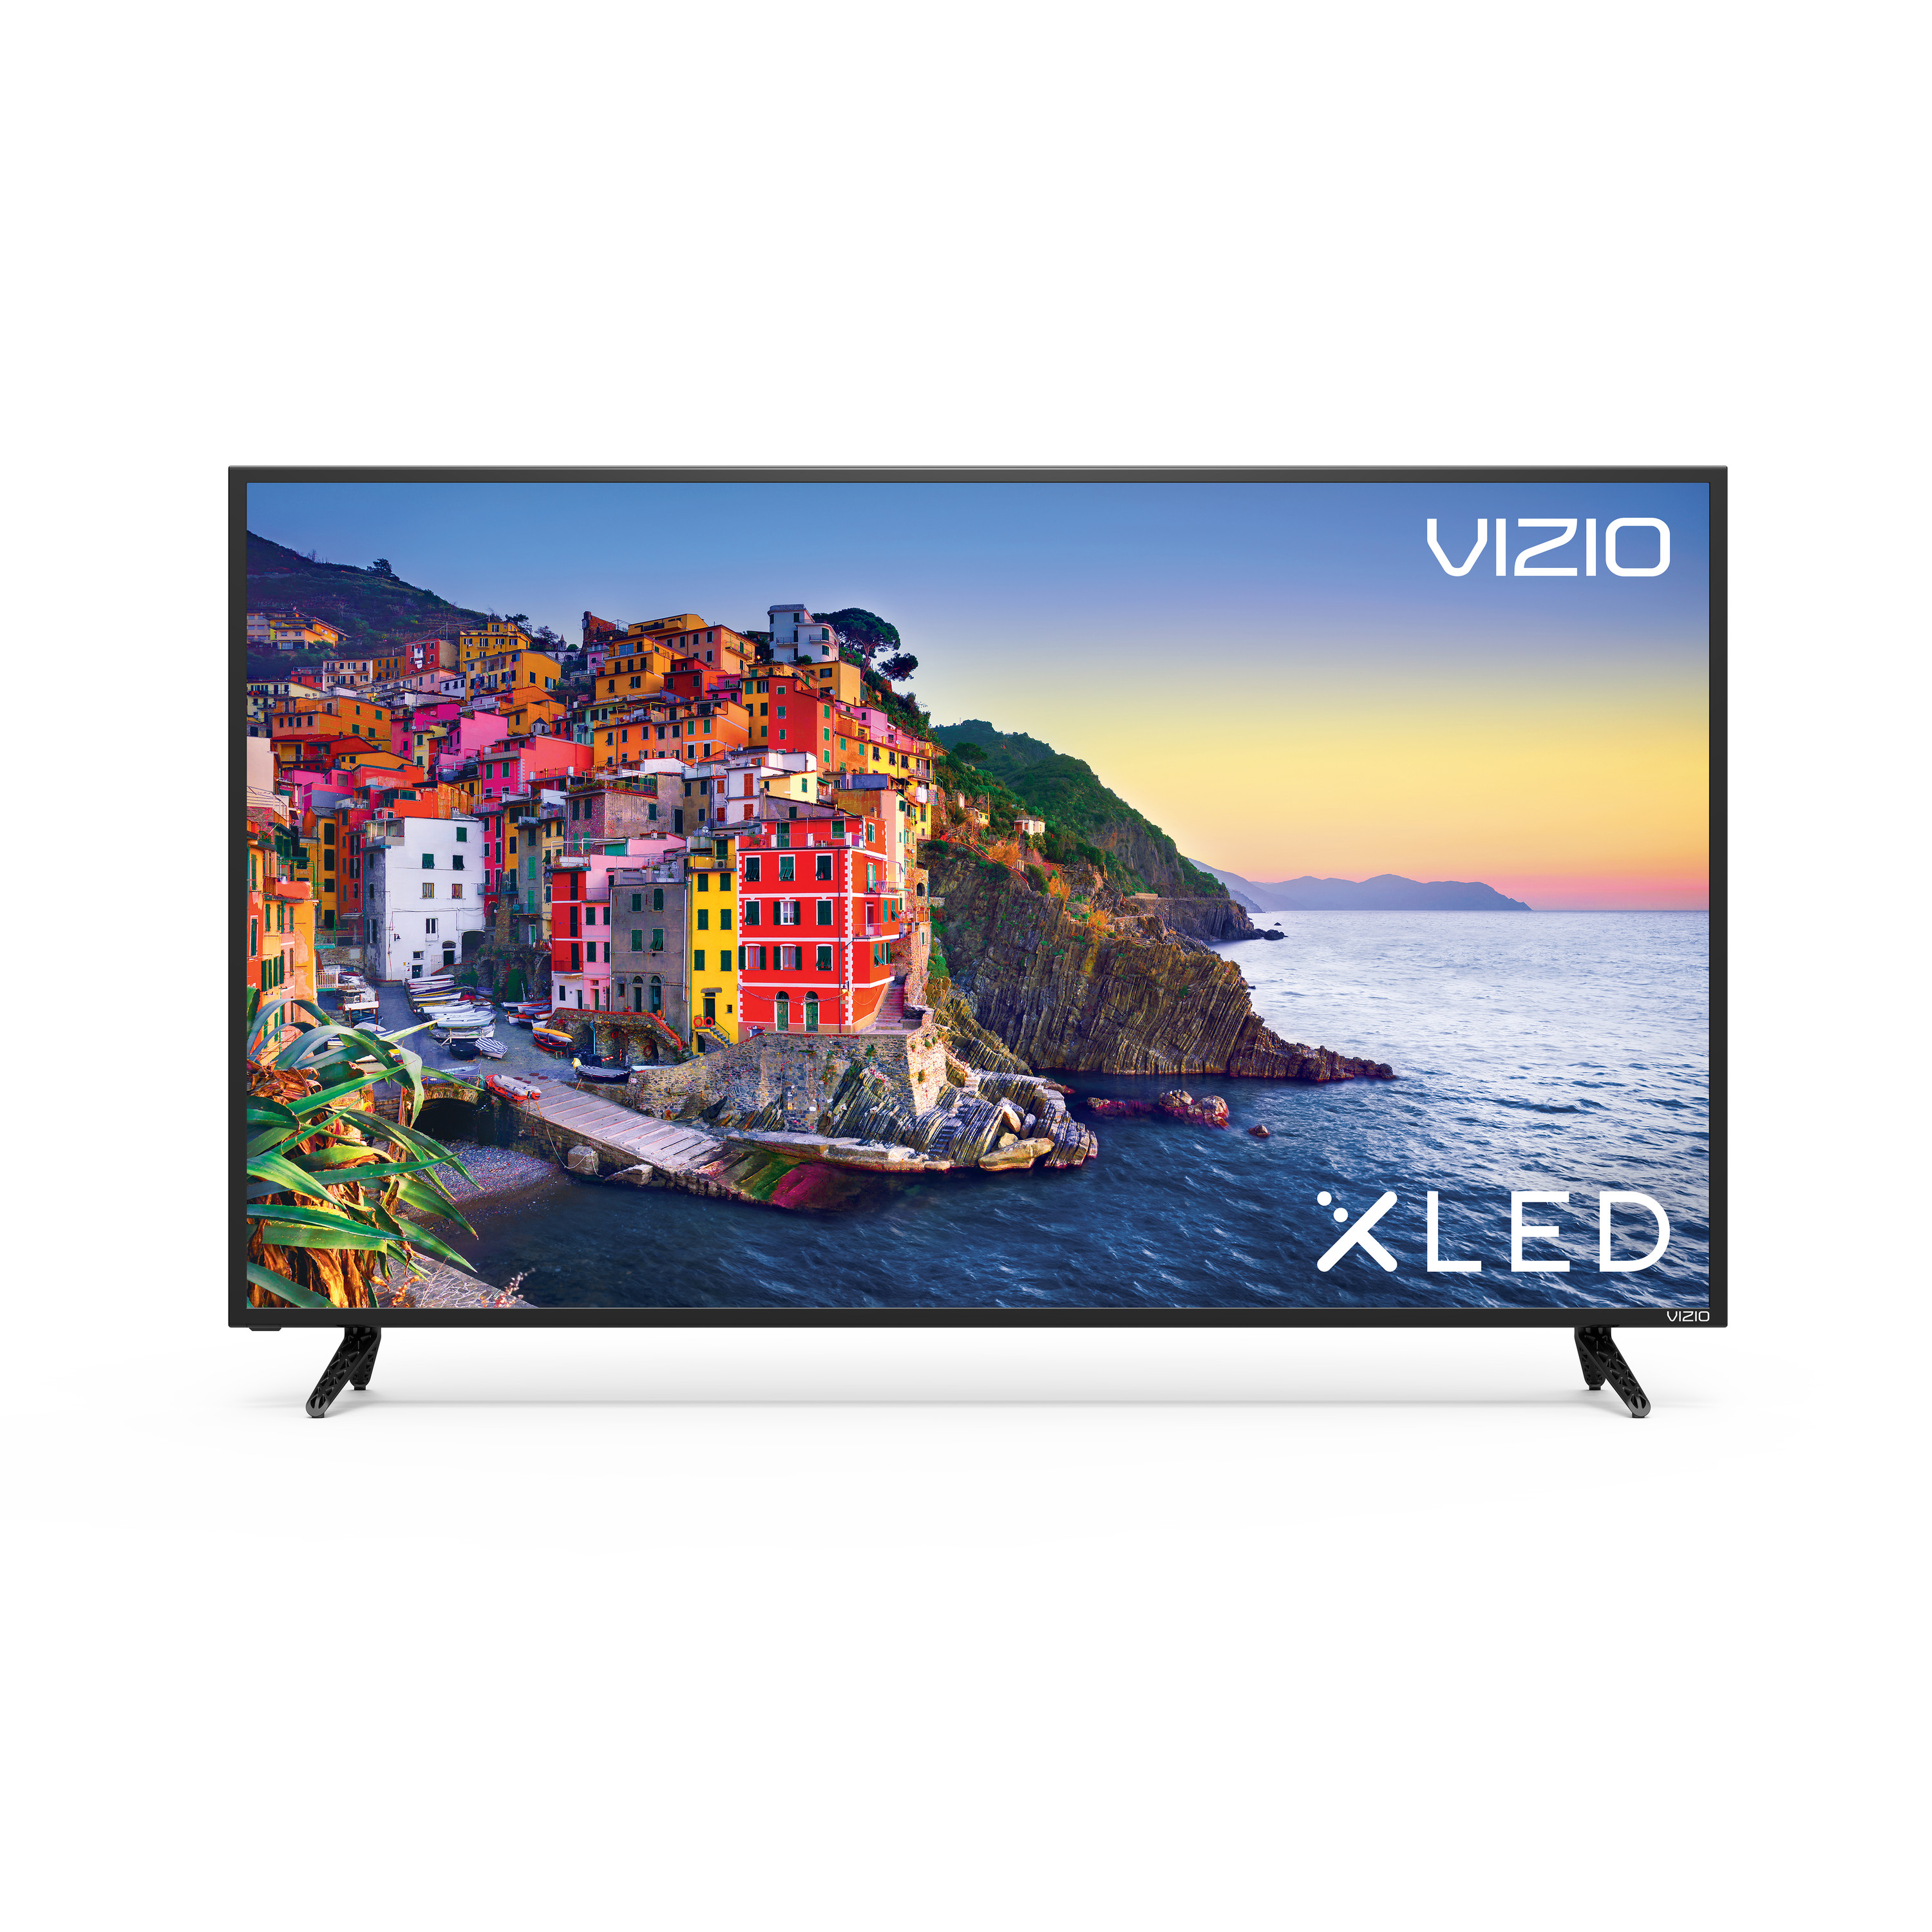 Walmart.com deals on Vizio 70-inch Class 4K (2160P) Smart XLED Home Theater Display Refurb